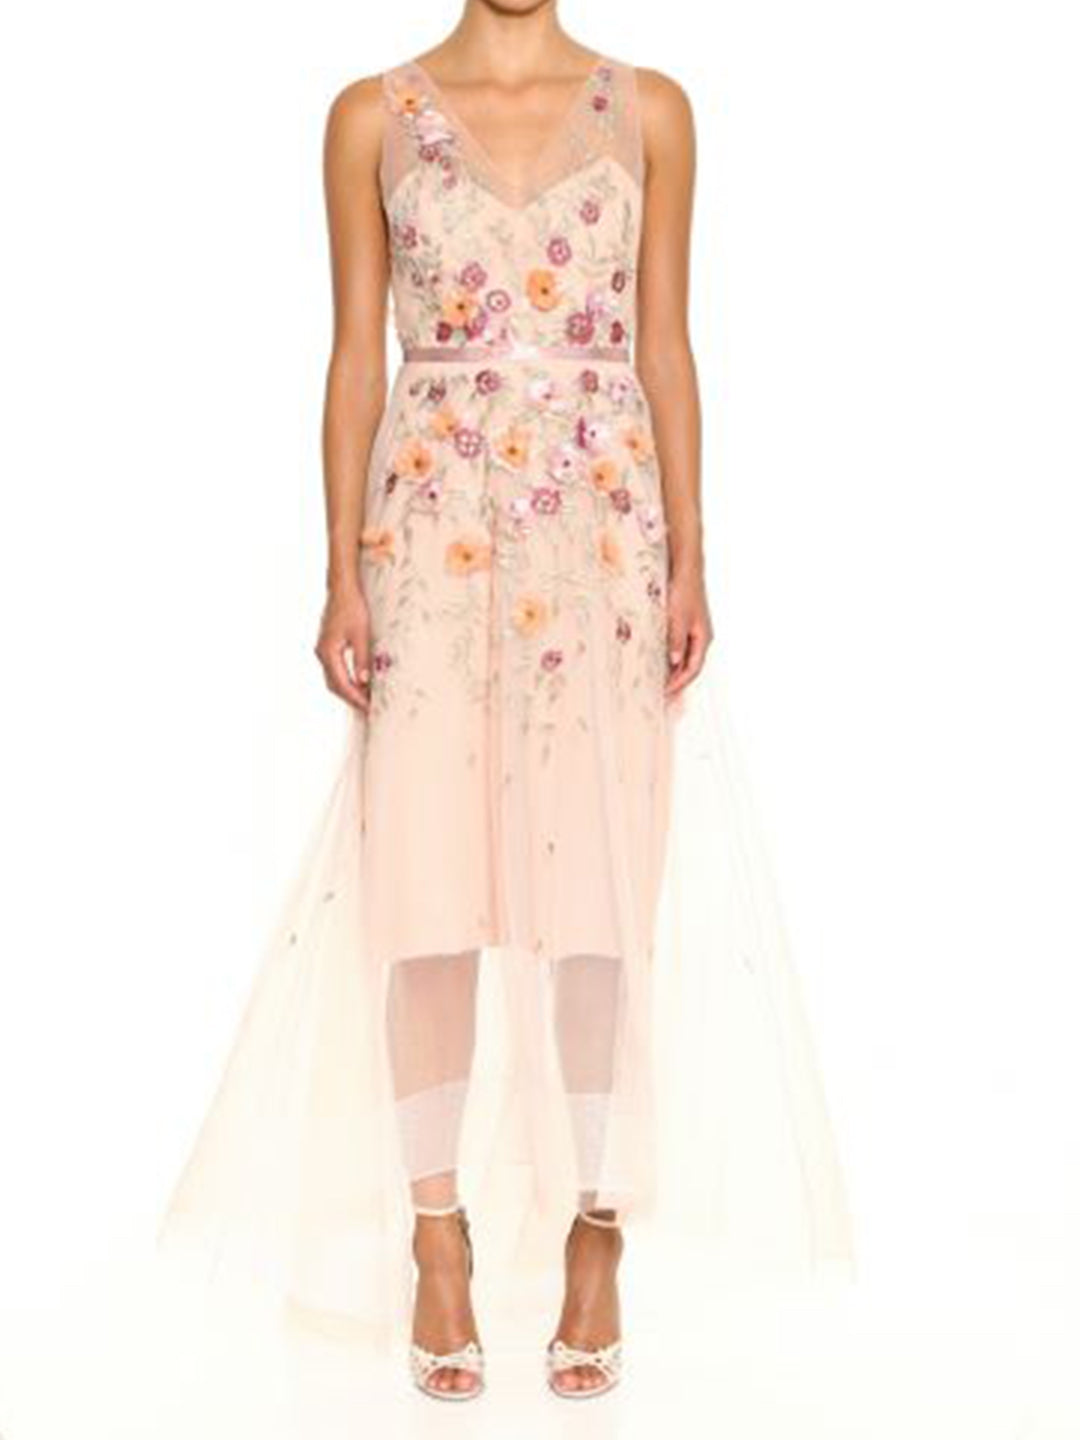 3D Floral Embroidered Hi-Low Gown